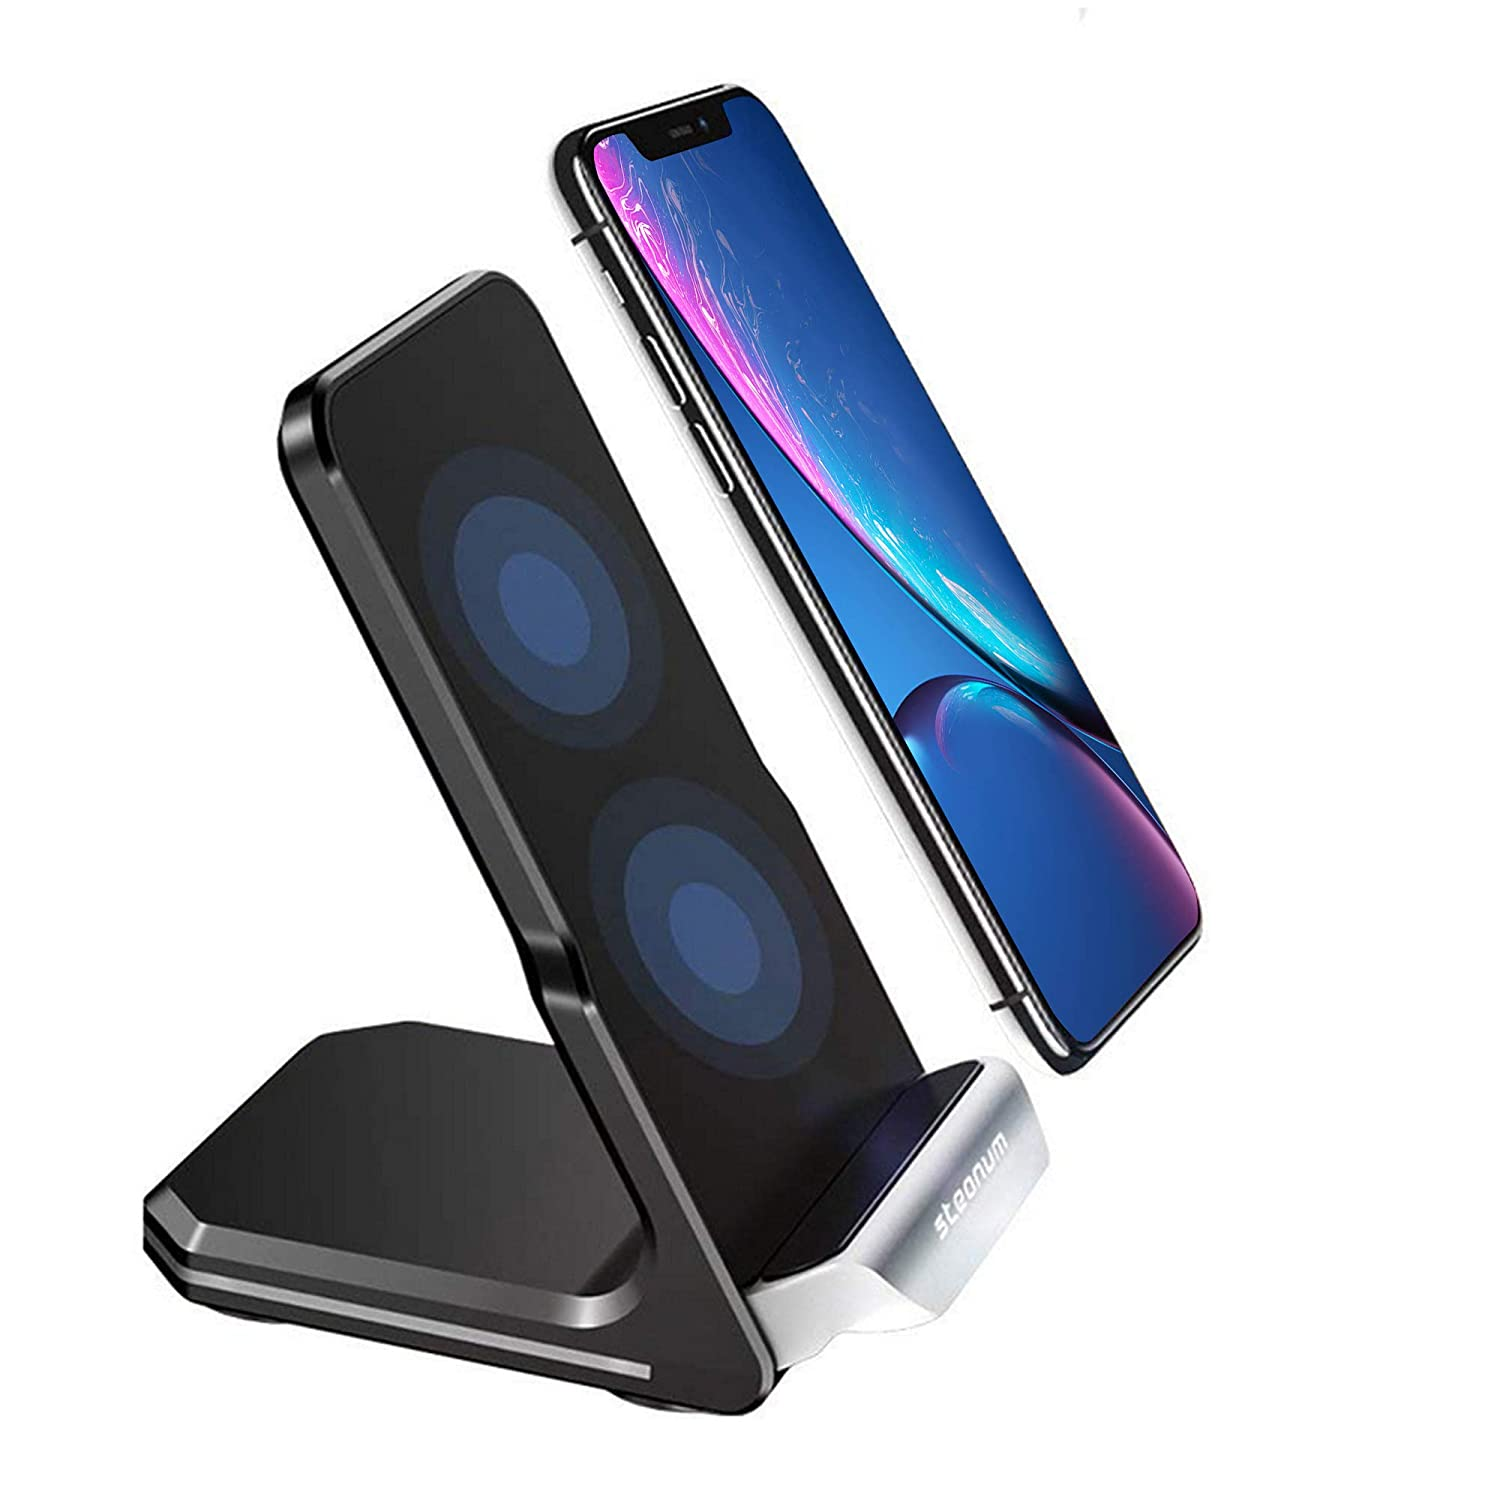 Wireless Charger, Steanum Qi Fast Wireless Charger Stand, 10W Dual Coil Intelligent Induction Charger Charging Holder for iPhone Xs Max / Xs / Xr / X / 8/8 Plus, Galaxy Note 5/8/9, S9 / S9 + / S8 / S8 + / S7 / S7edge / S6 Edge +&Other Qi-Enabled Devices